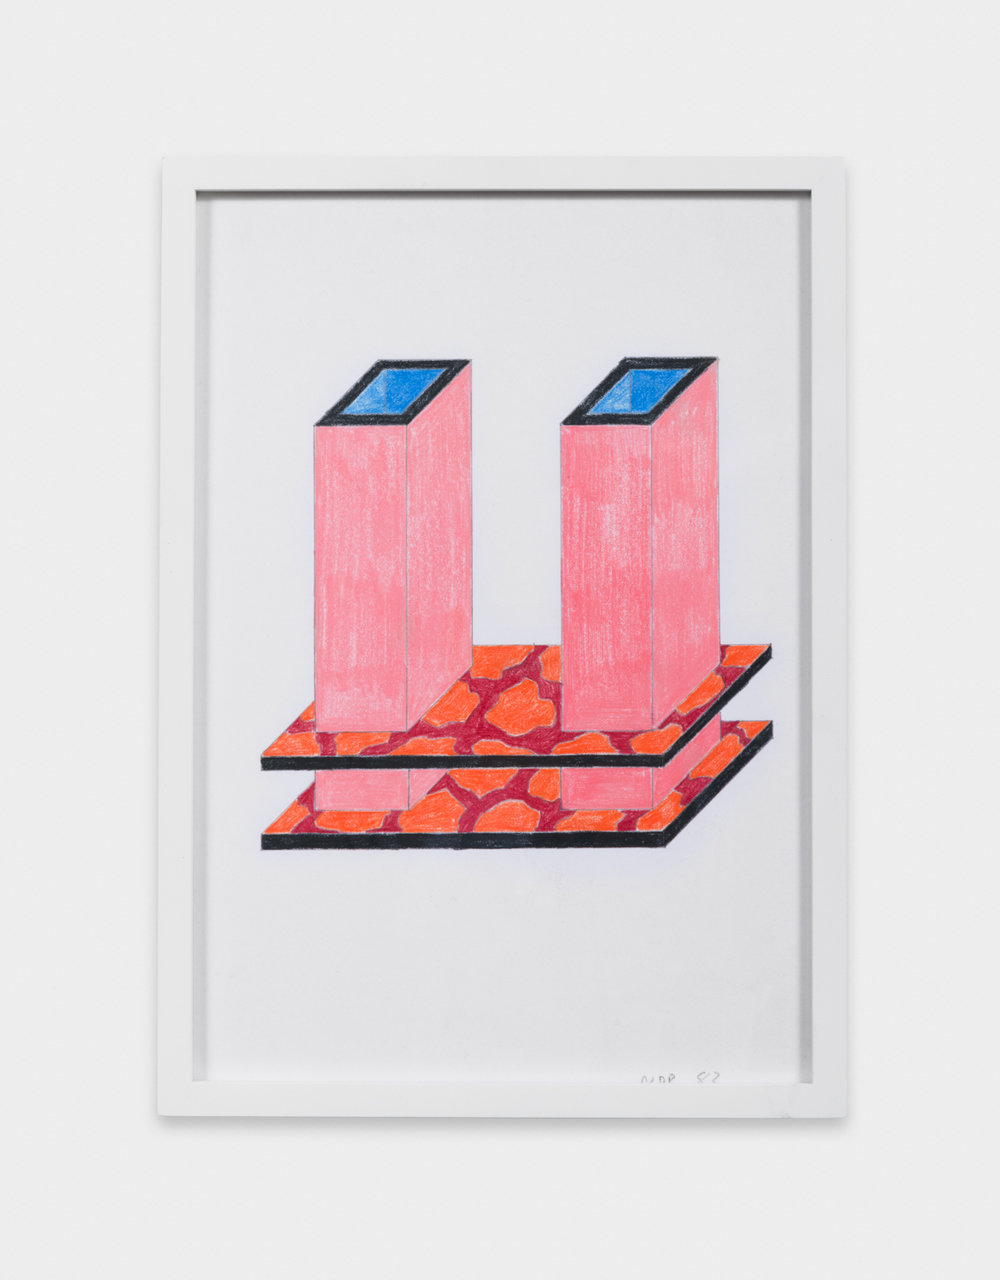 Nathalie Du Pasquier  Project for a vase for two flowers  1983 Color crayon on paper 12 1/4 x 8 3/4 in ND004